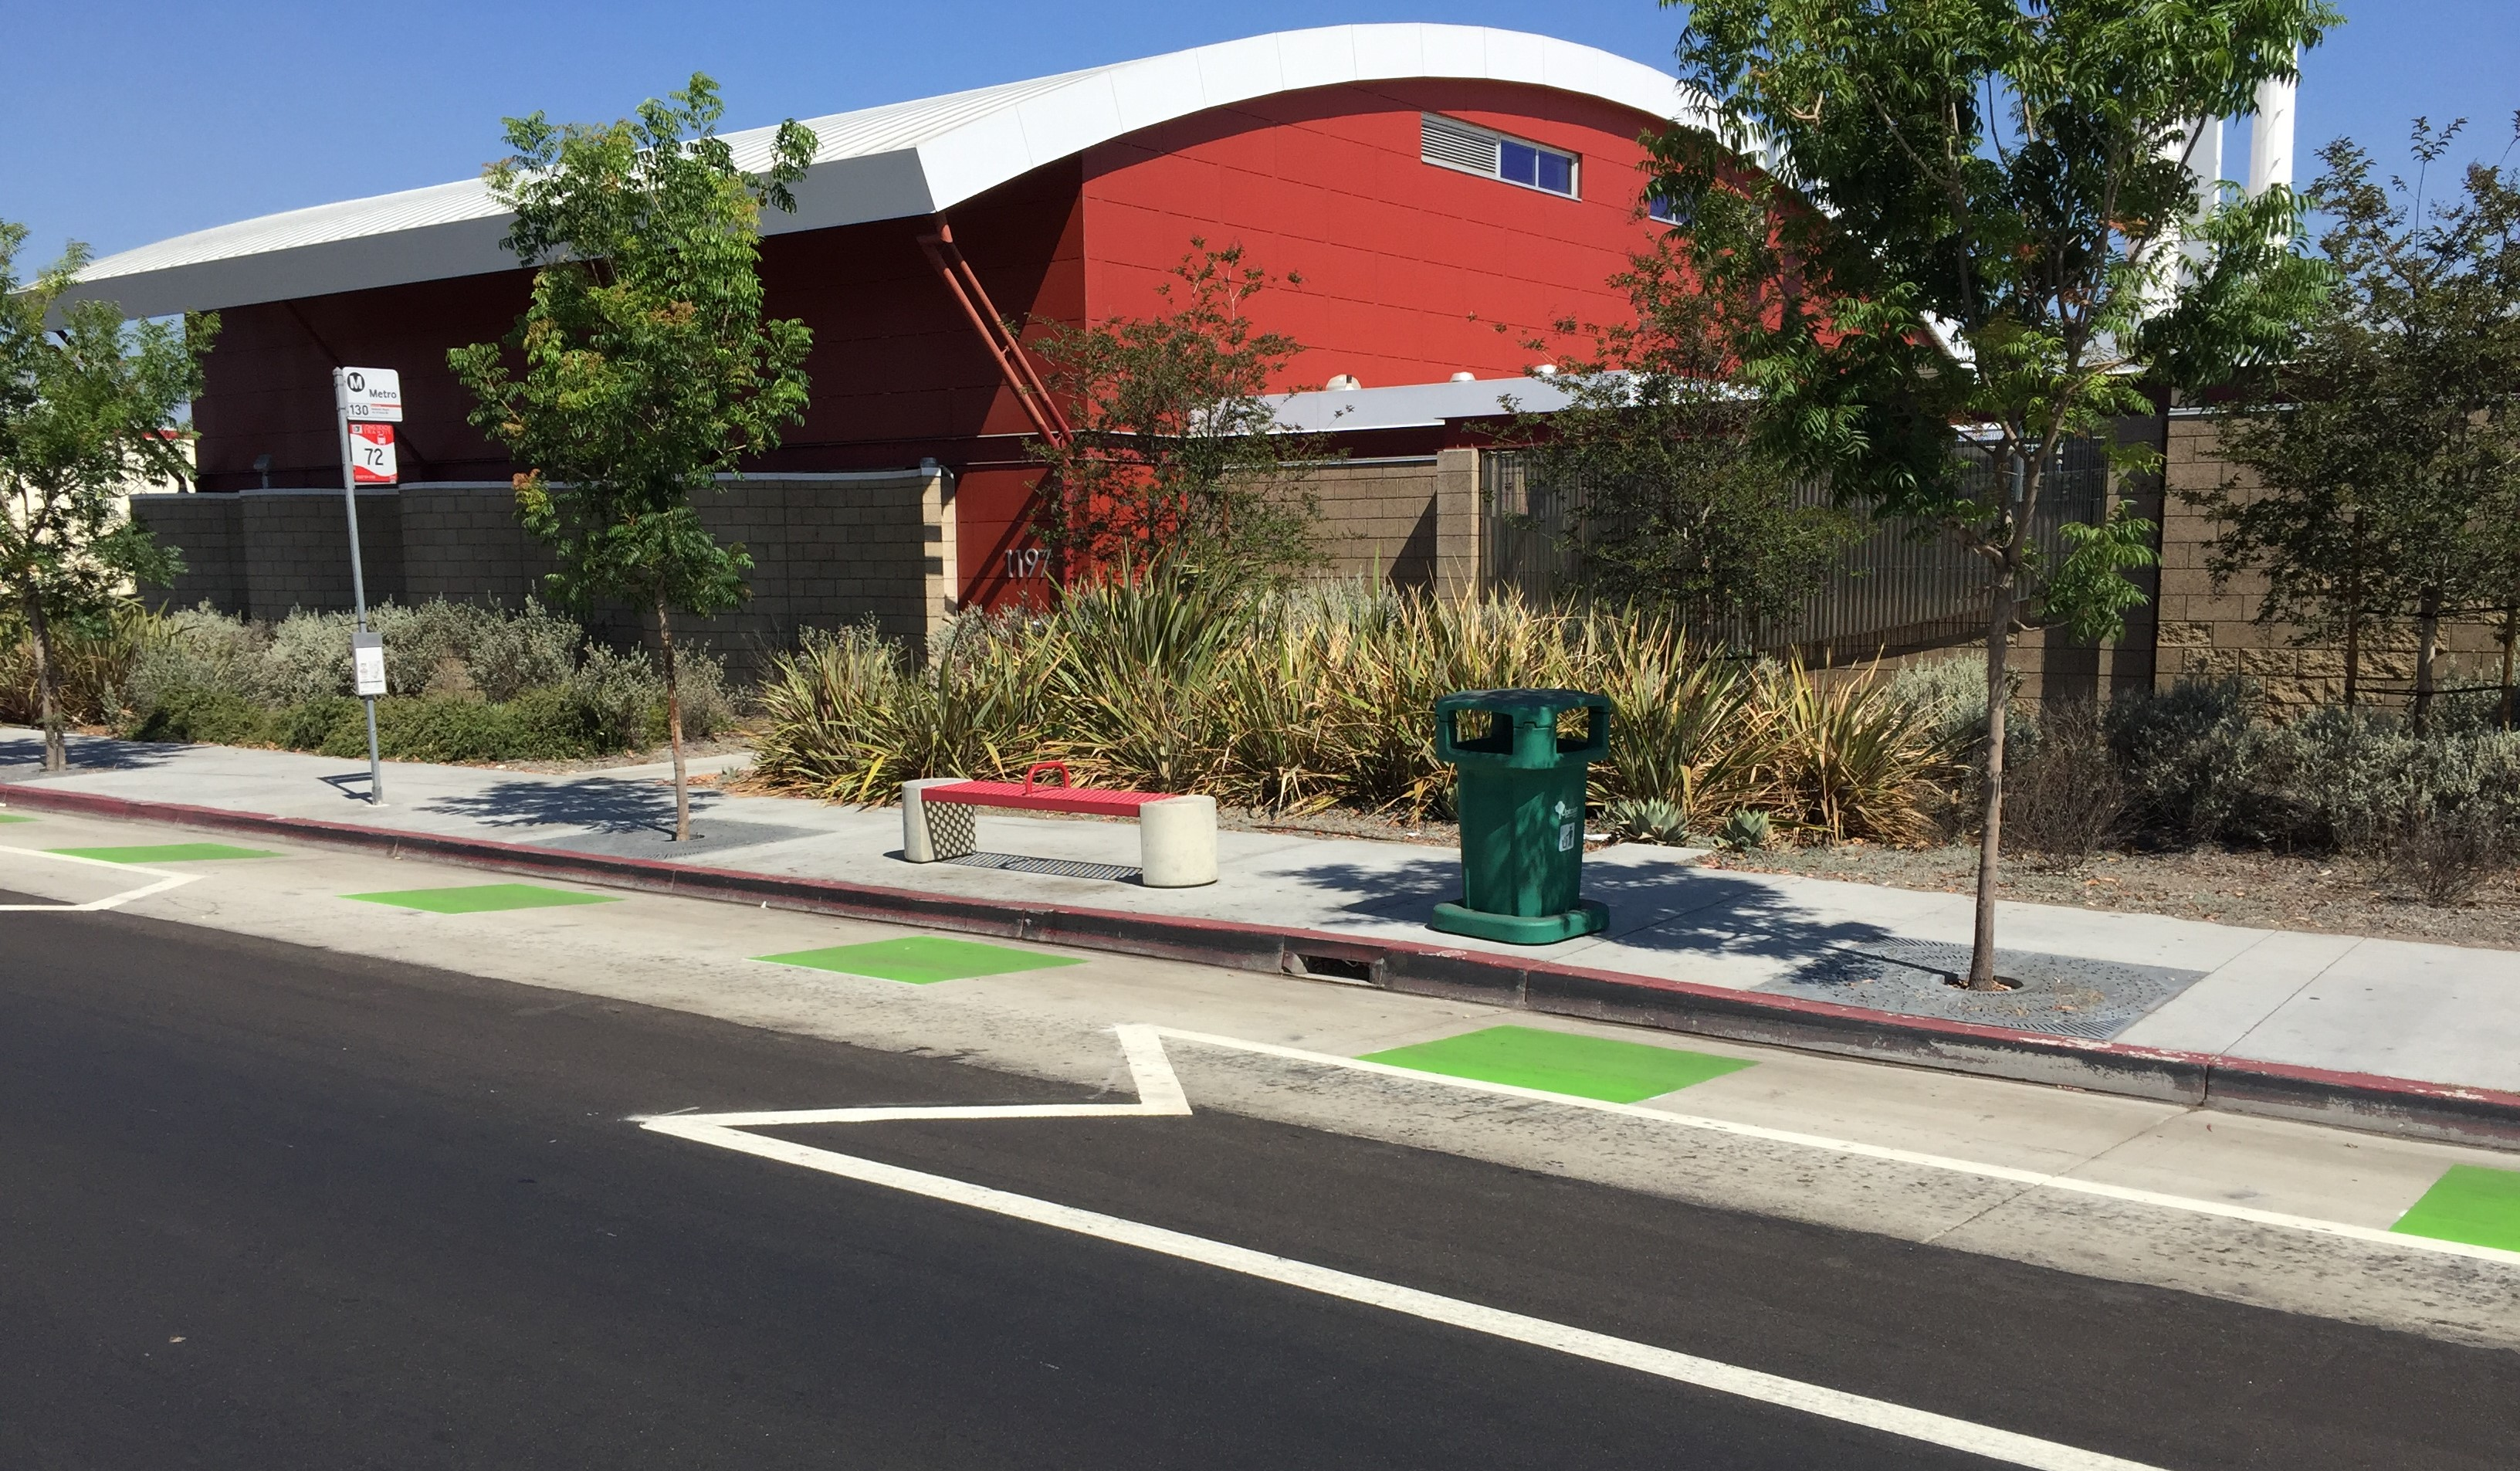 Example of unprotected merge zone at bus stops on Artesia Blvd protected bike lanes